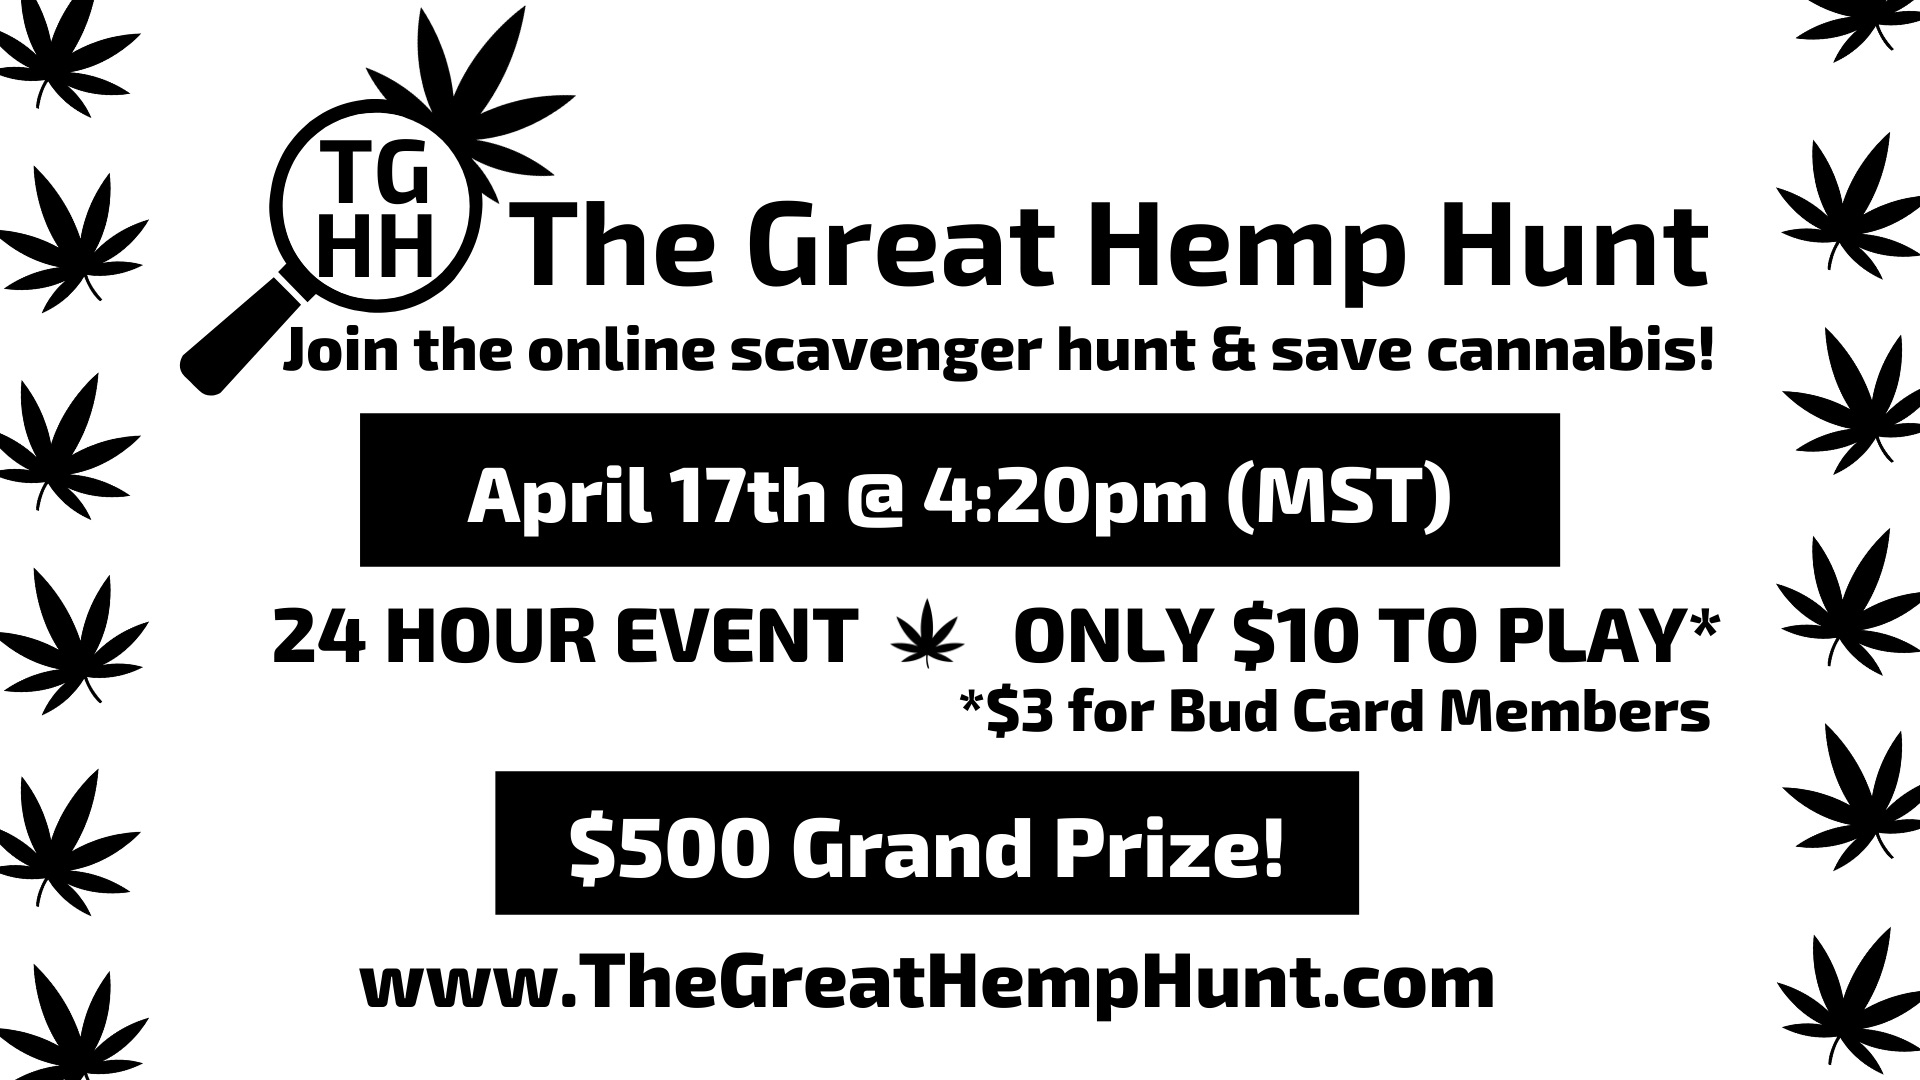 The Great Hemp Hunt brought to you by The Bud Card